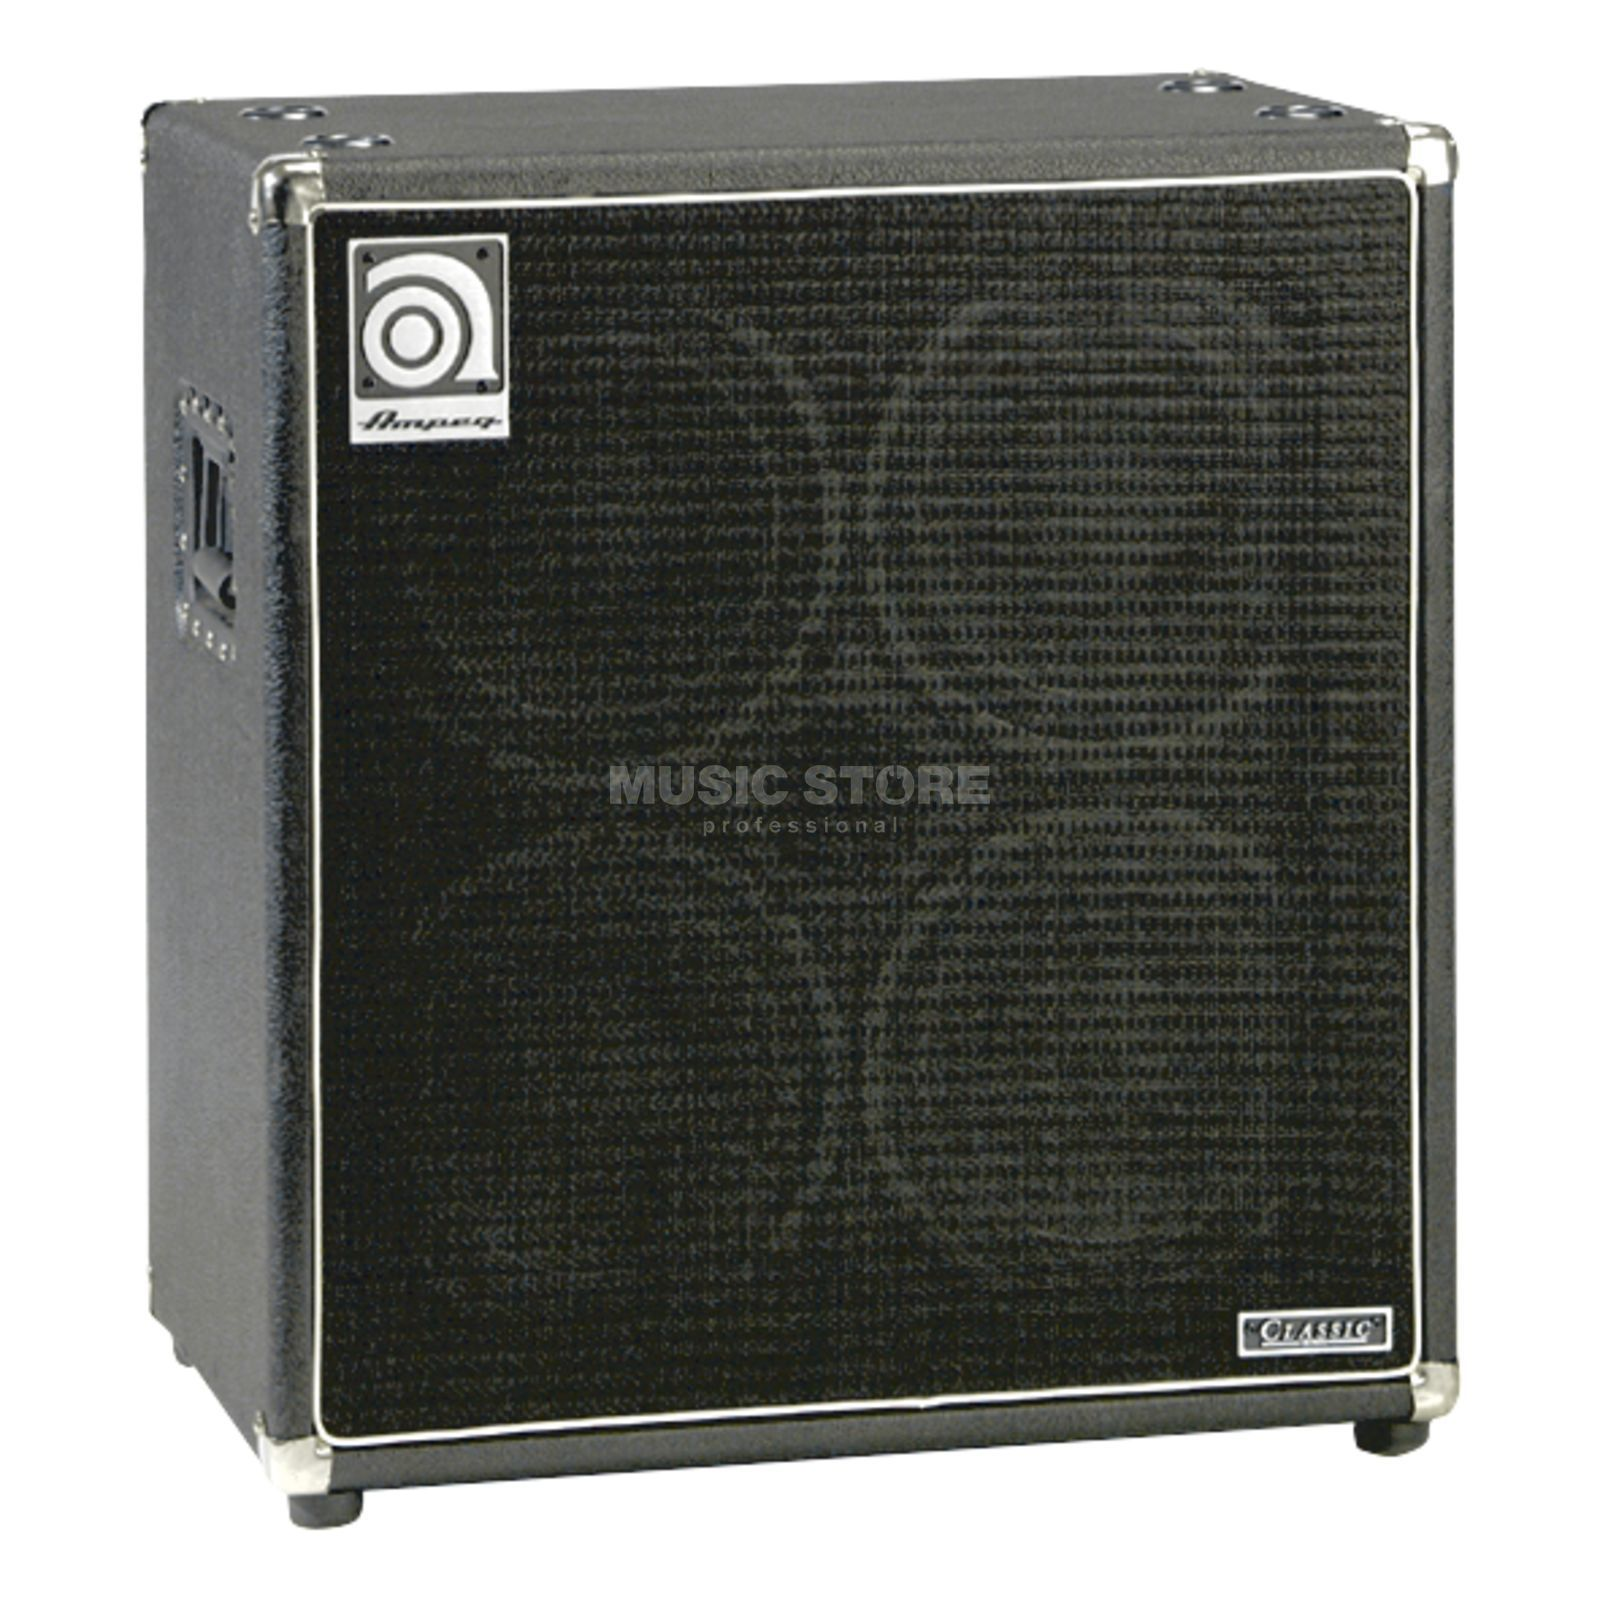 "Ampeg SVT 410 HE Box 400W (8 Ohm) 4x10"" Speaker + Horn Product Image"